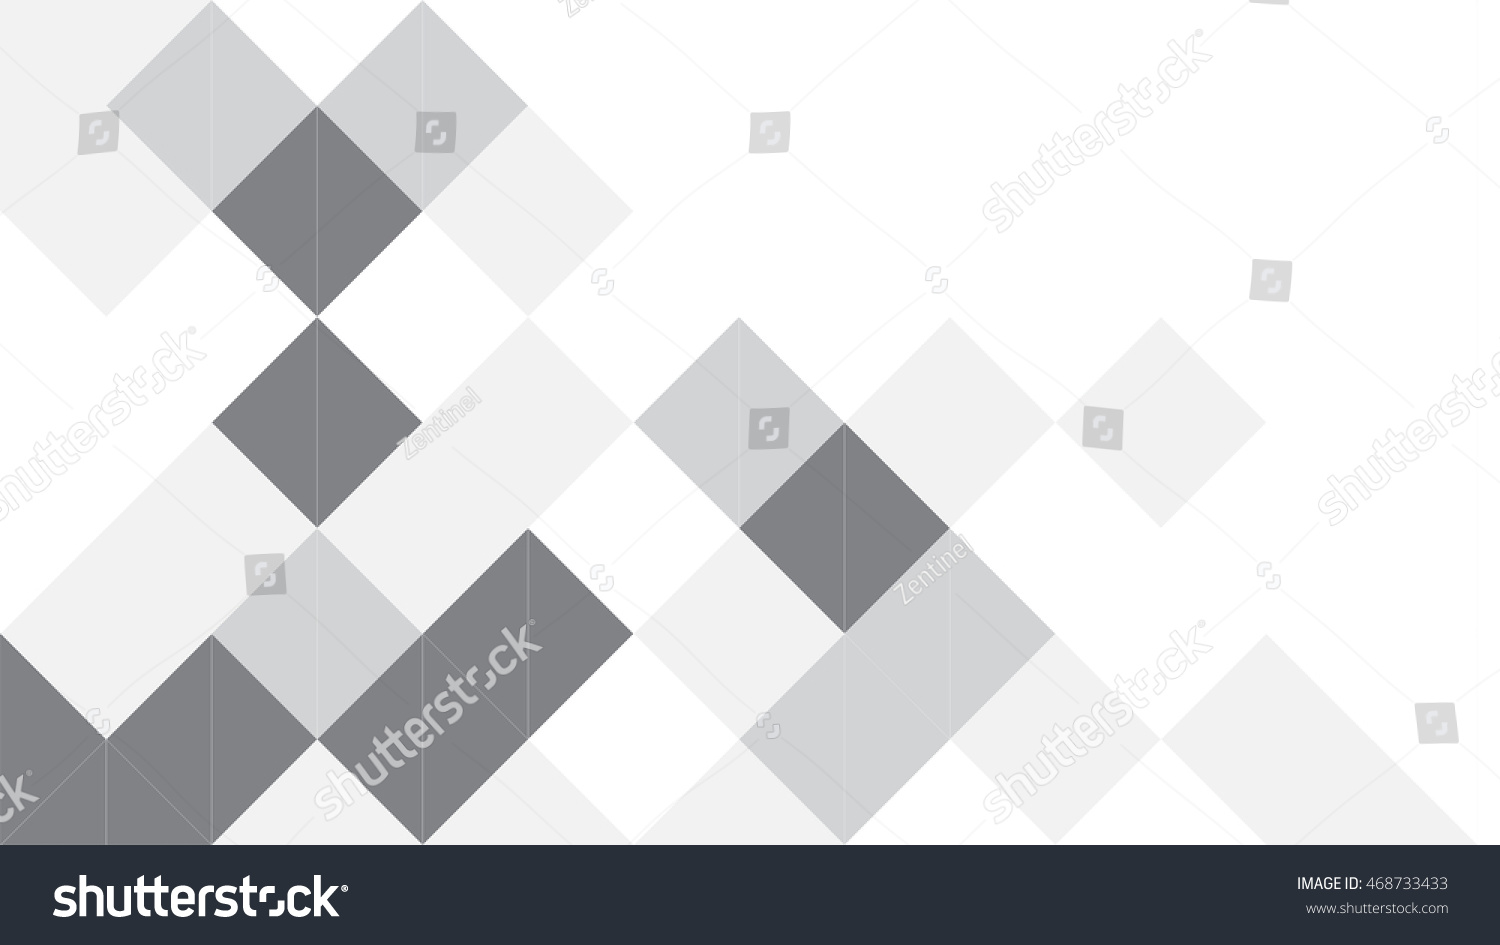 Abstract Square Background Digital Wallpaper Presentation 468733433